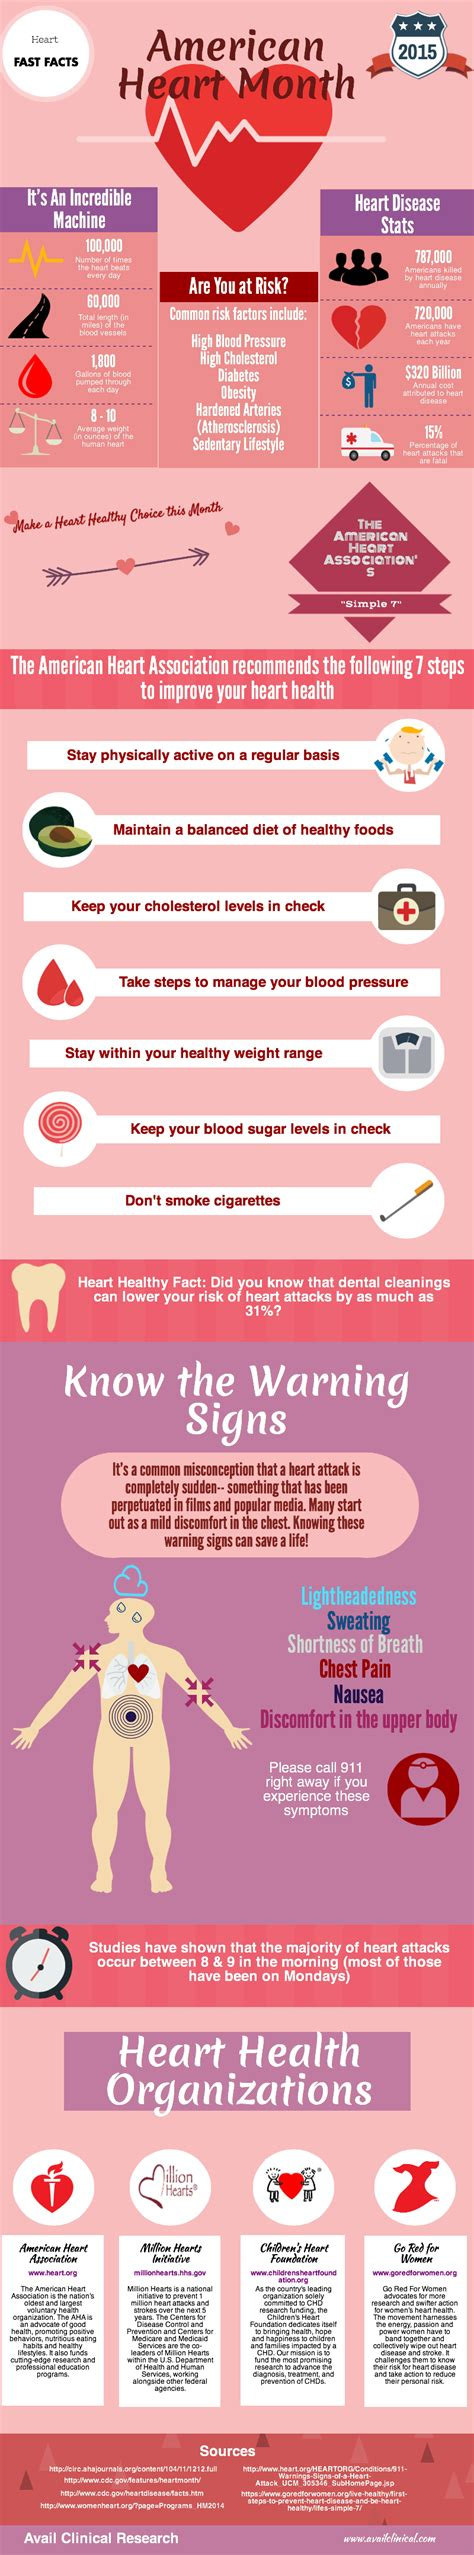 Look at this INFOGRAPHIC - It's Heart Healthy!   Avail